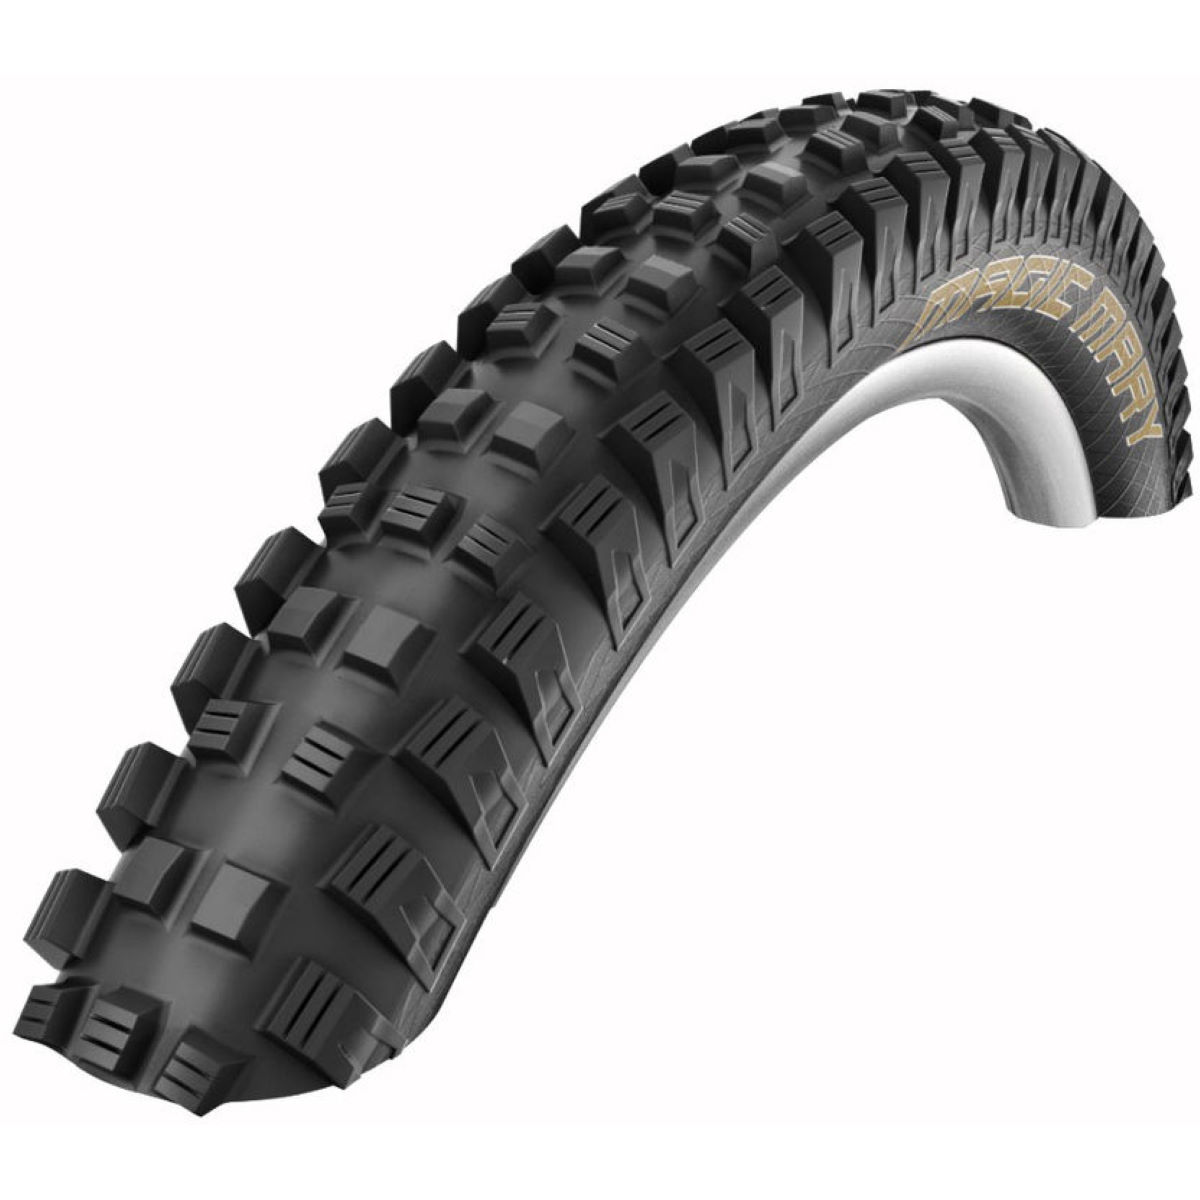 Pneu Schwalbe Magic Mary Snakeskin TL-Easy 27,5 pouces (souple) - 27.5 x 2.35 Noir Pneus VTT